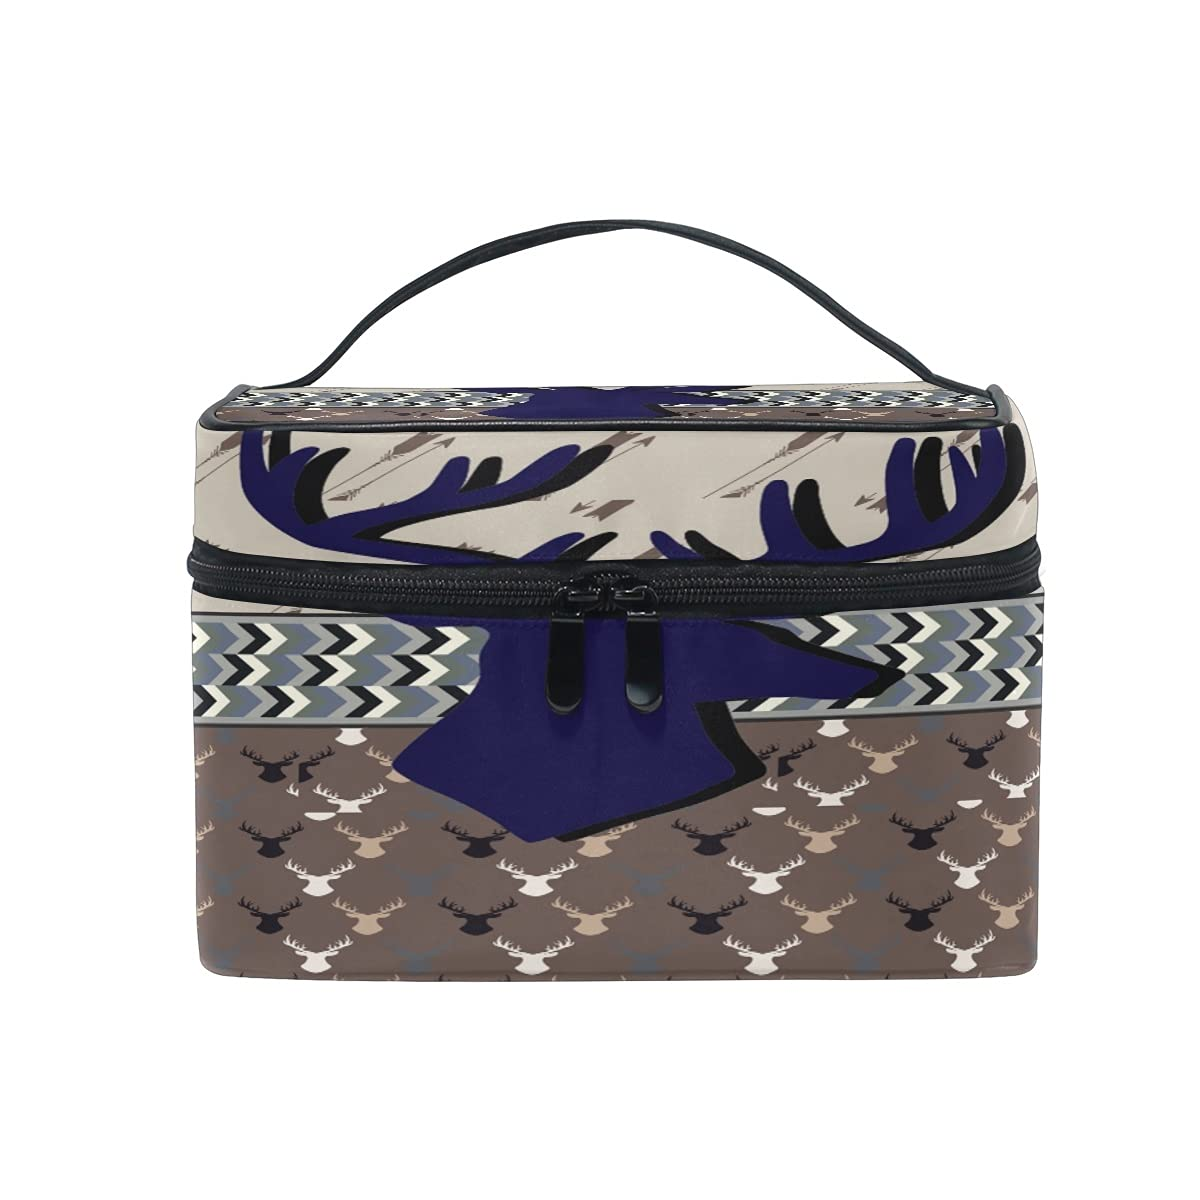 Deer Super sale period limited Cosmetic Bag Travel security Makeup Storage Organizer Cases Train